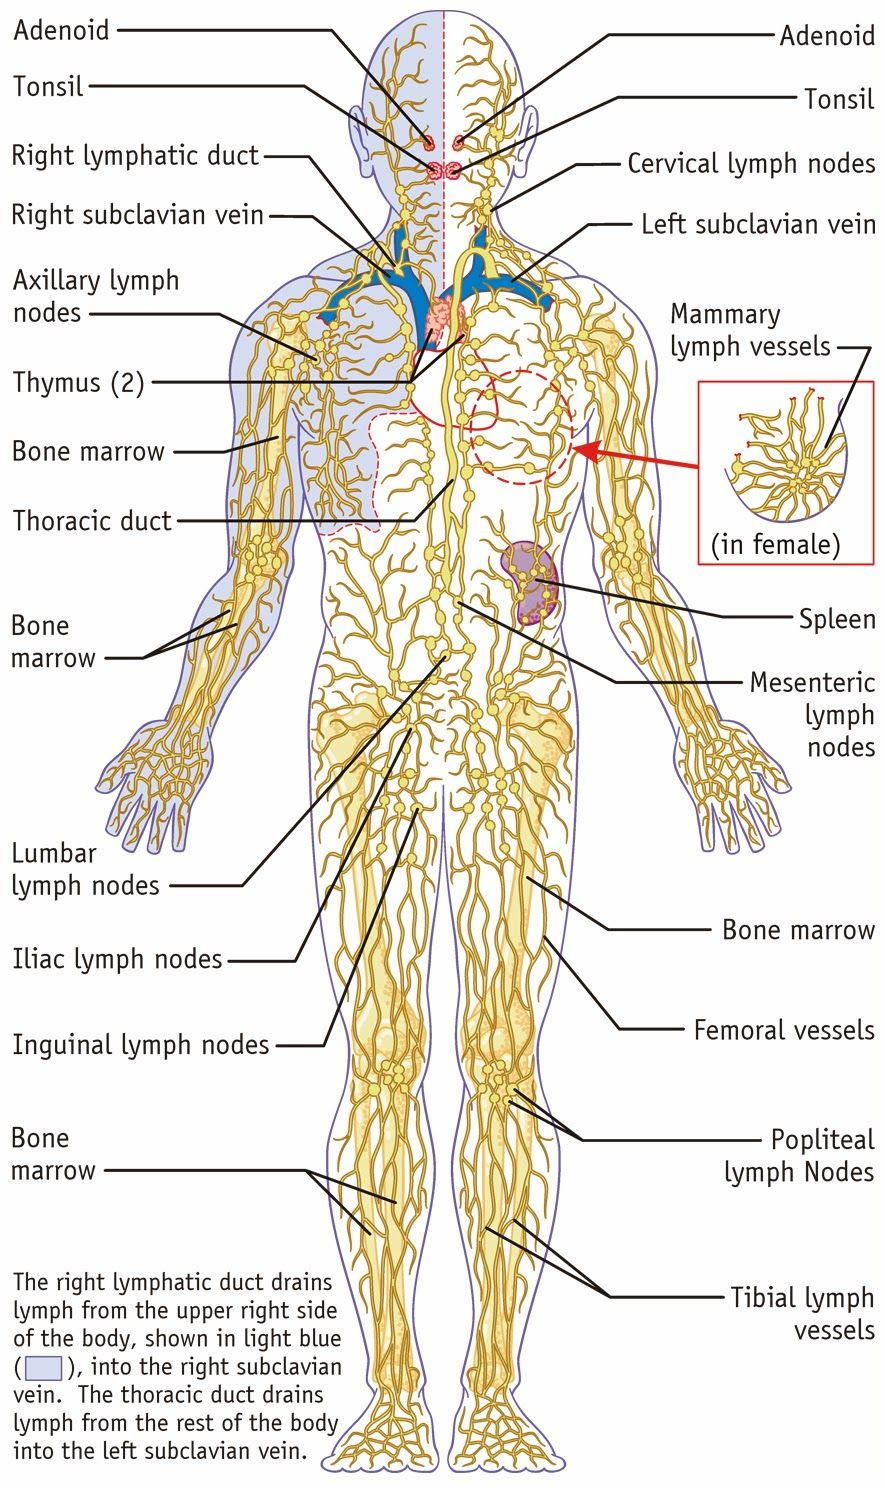 Pin On Human Anatomy Study